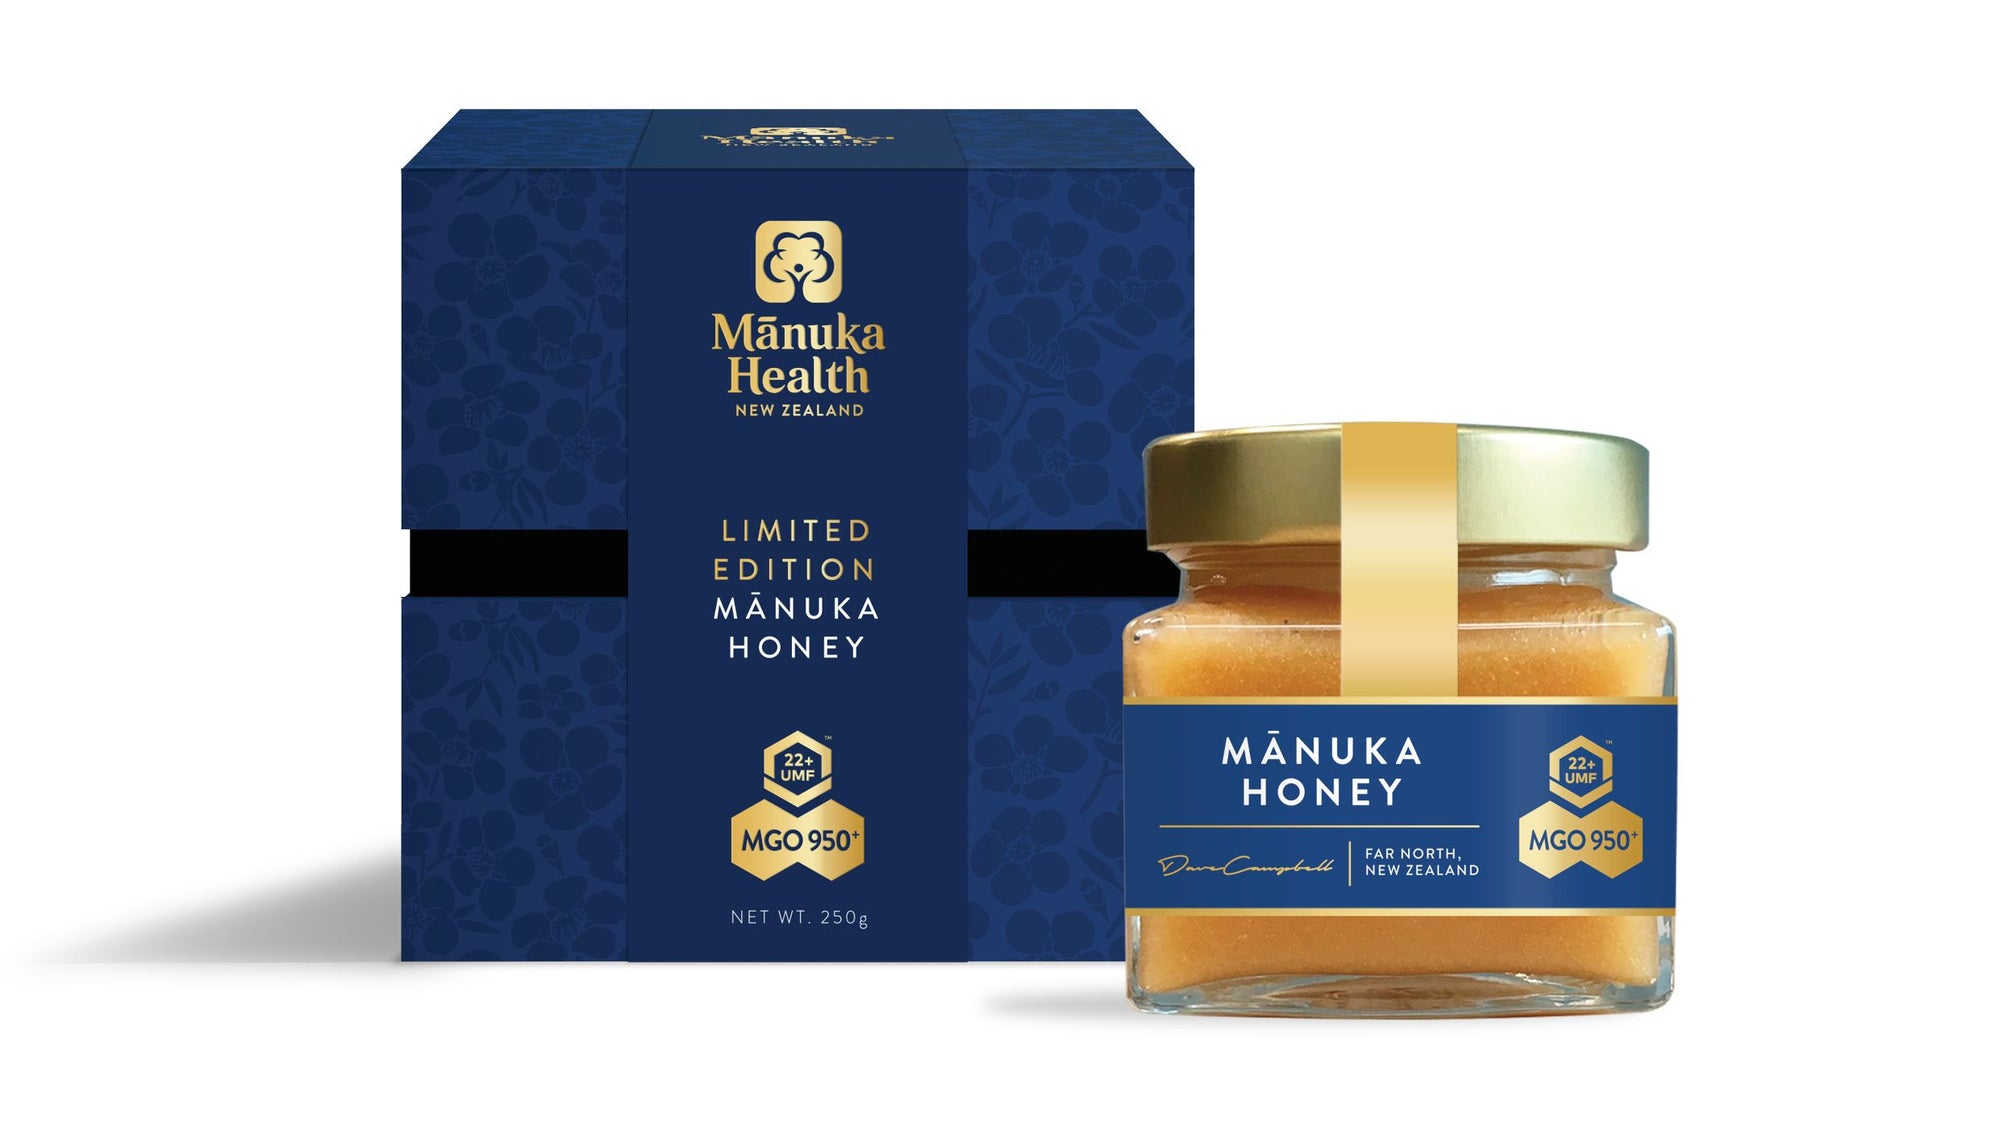 MGO 950+ Manuka Honey - Limited Release - Manuka Honey | Manuka Health